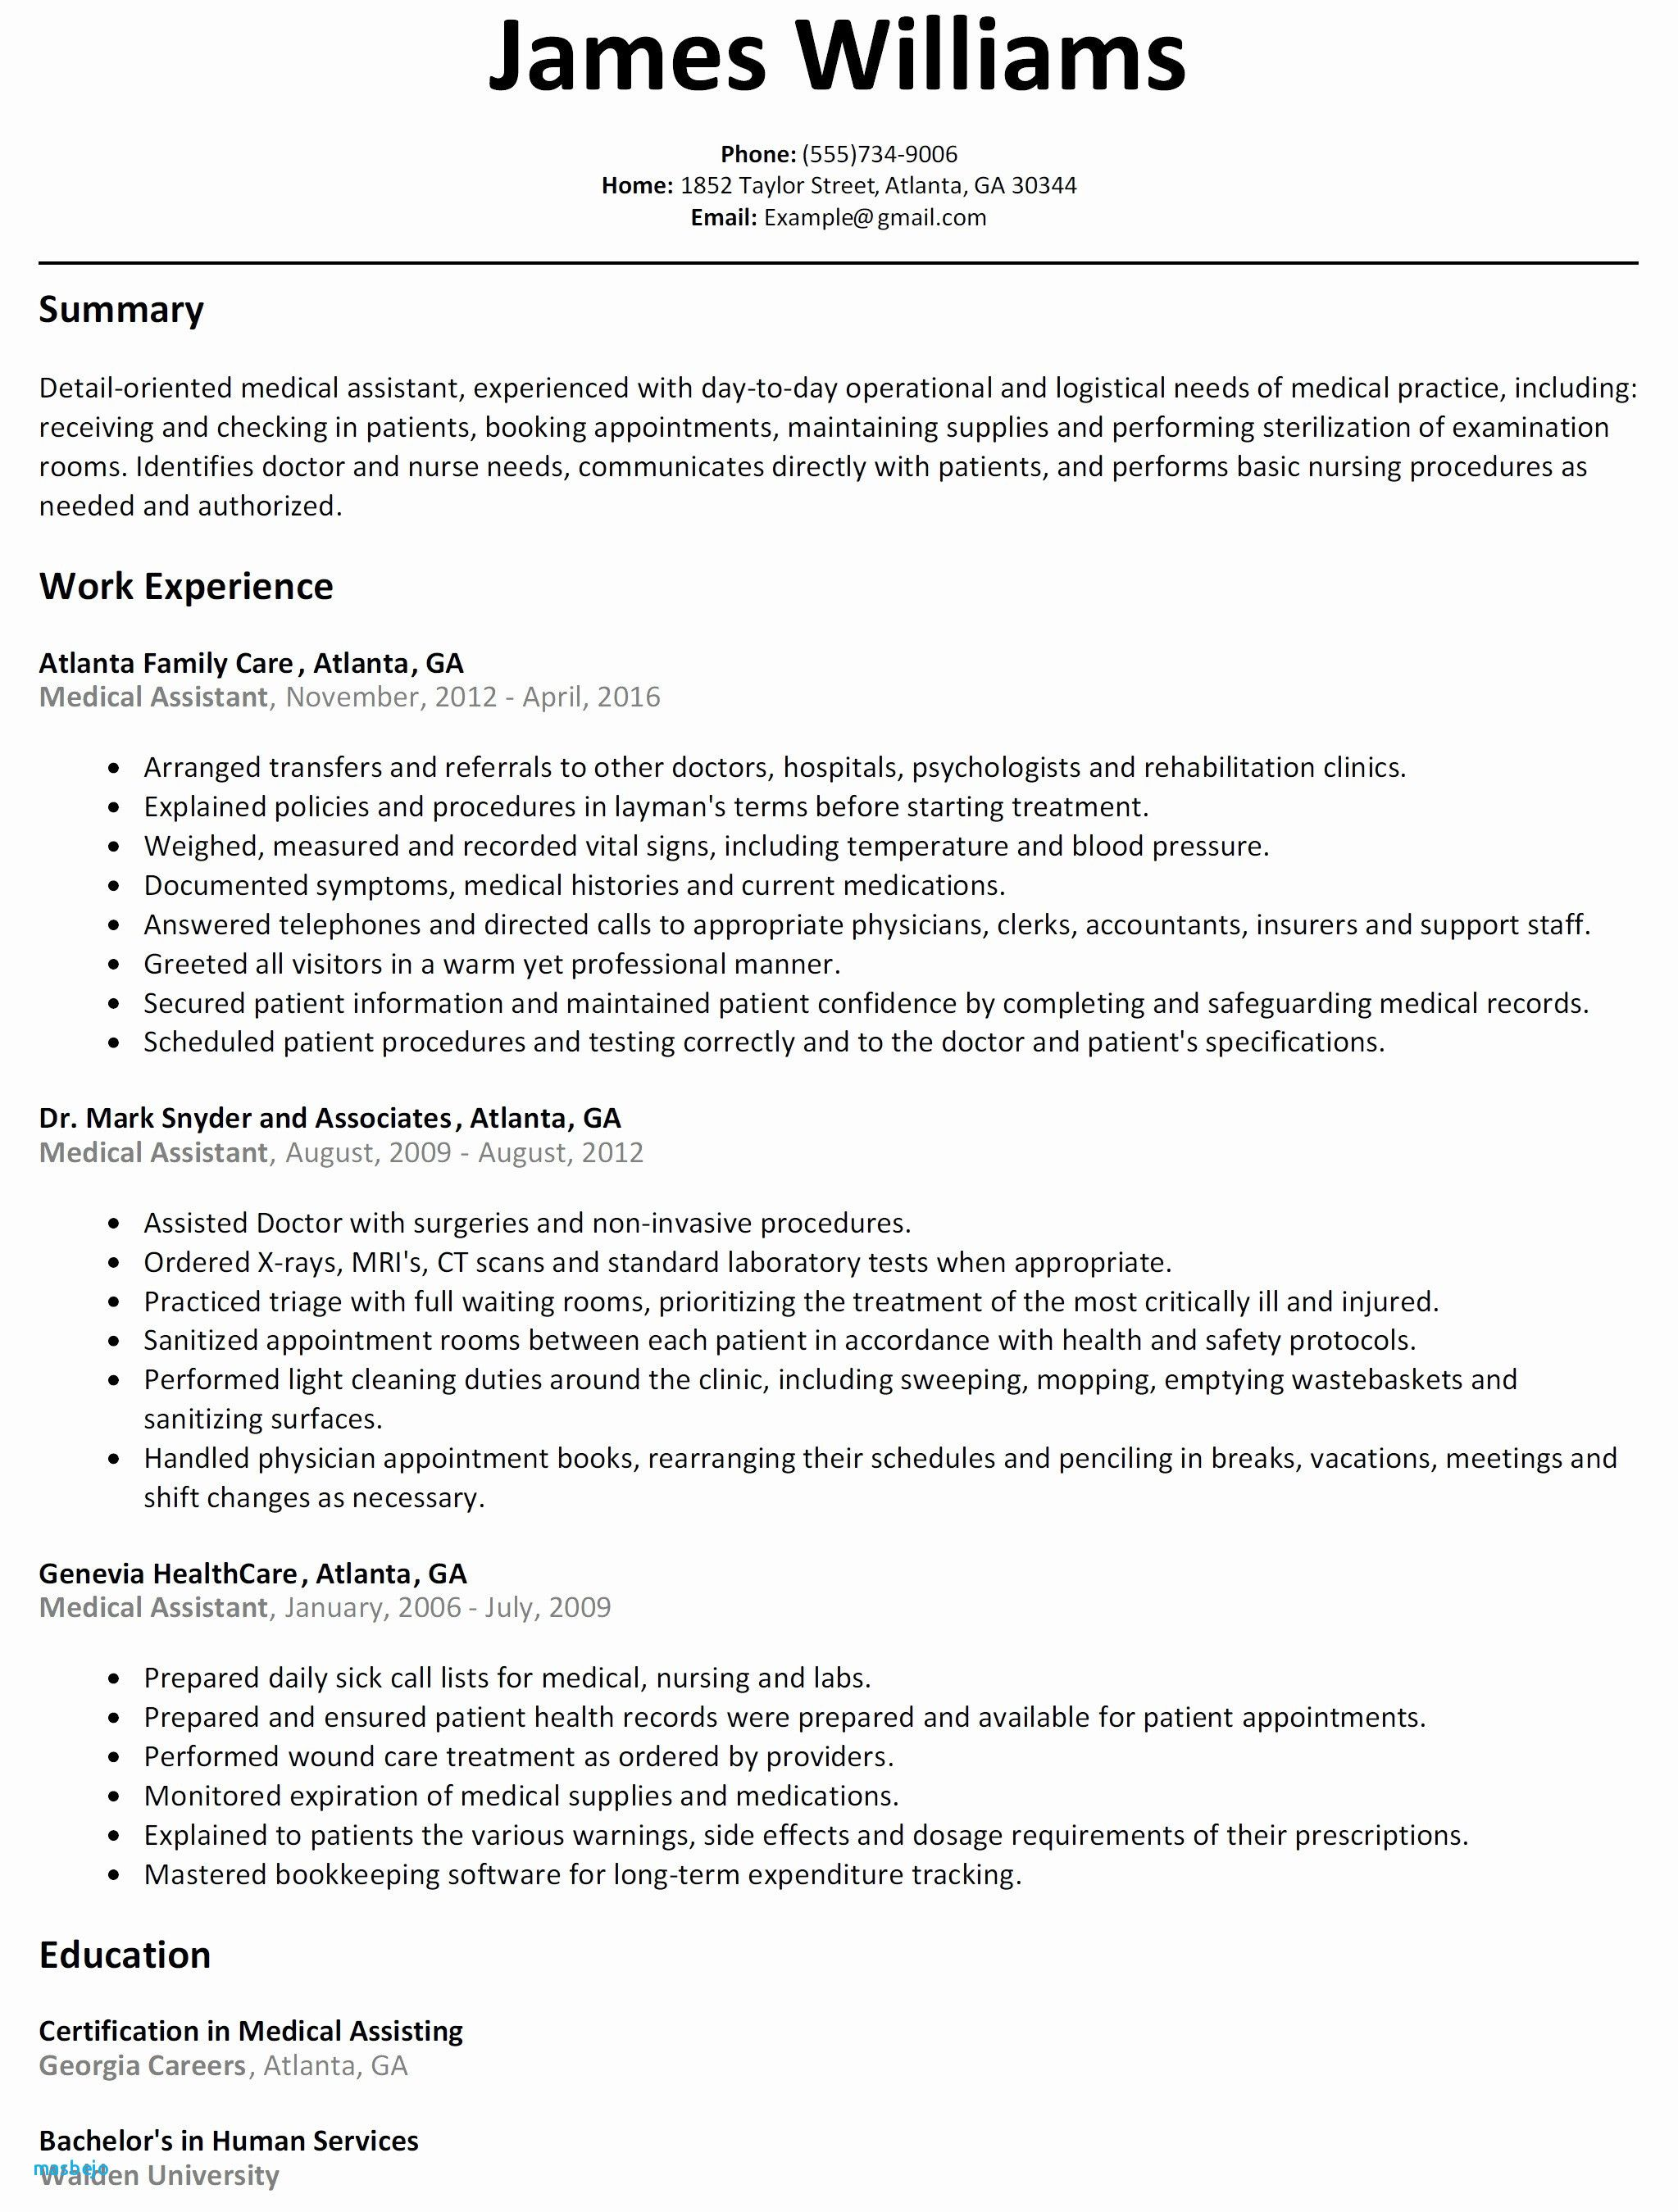 68 Beautiful Photos Of Resume Examples For Medical Assistant With